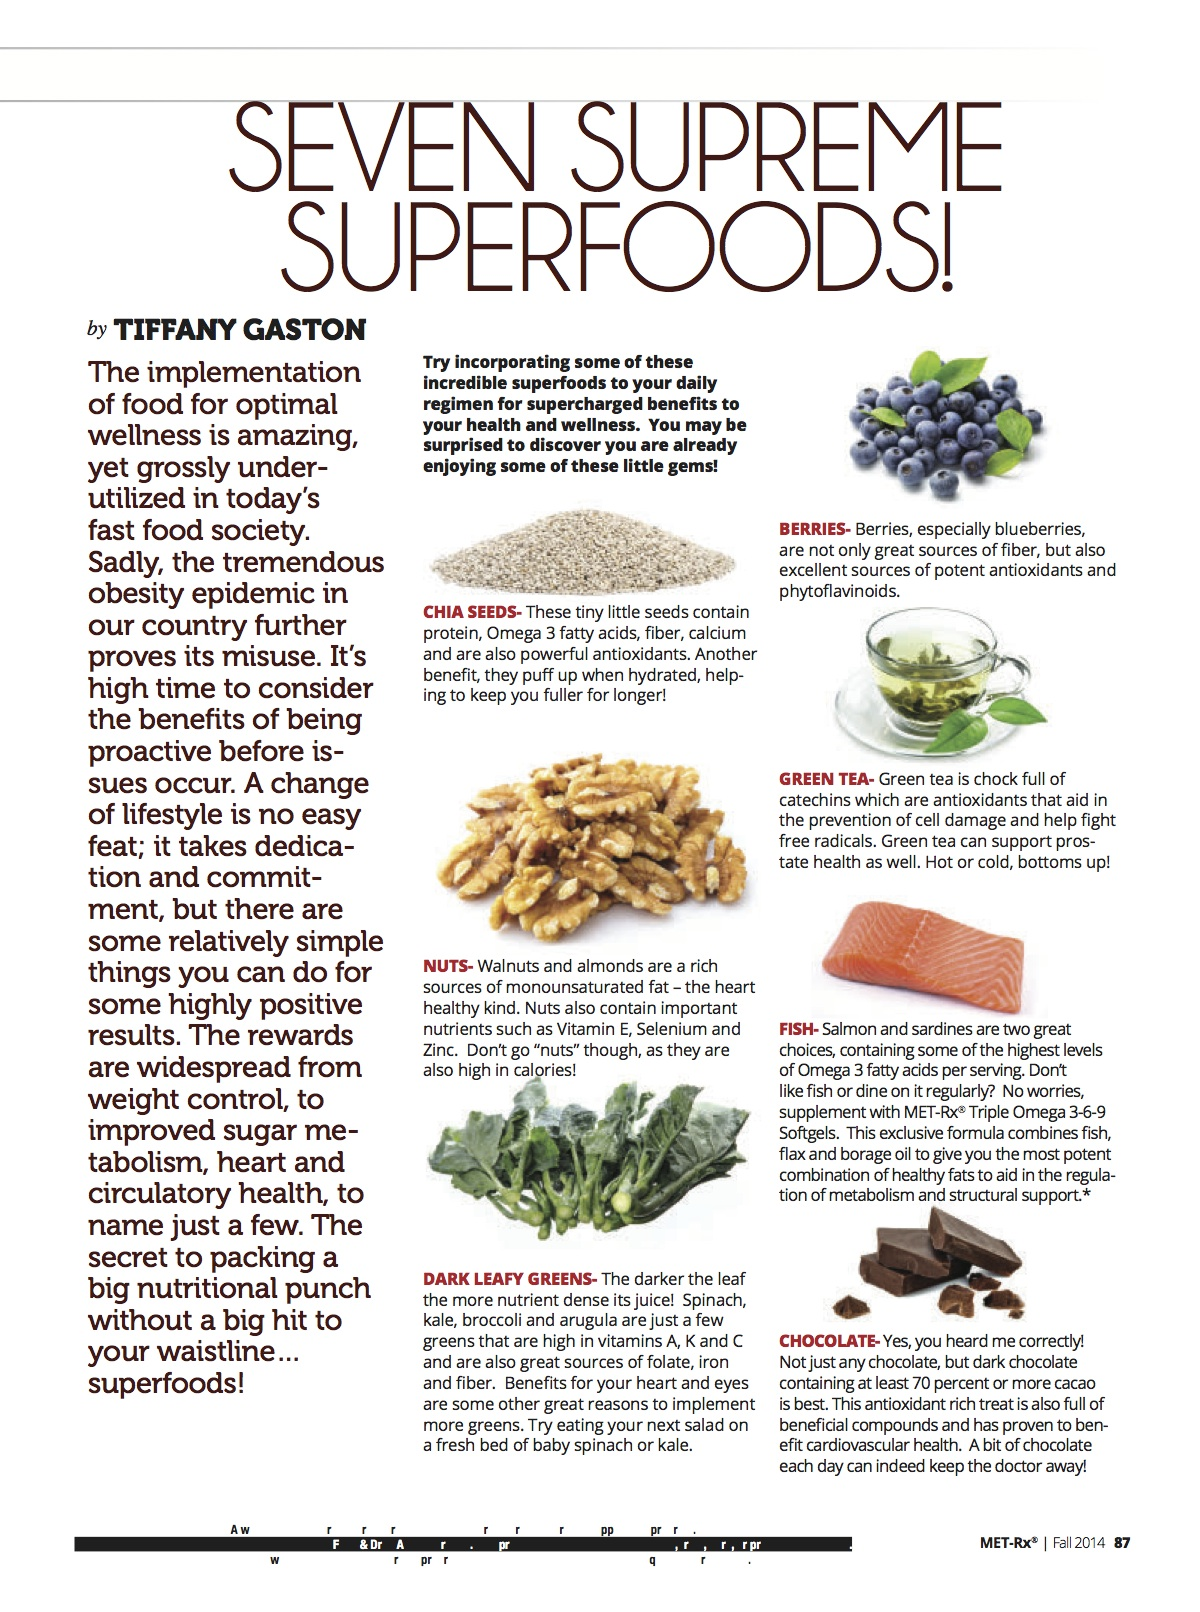 Seven Supreme Superfoods!